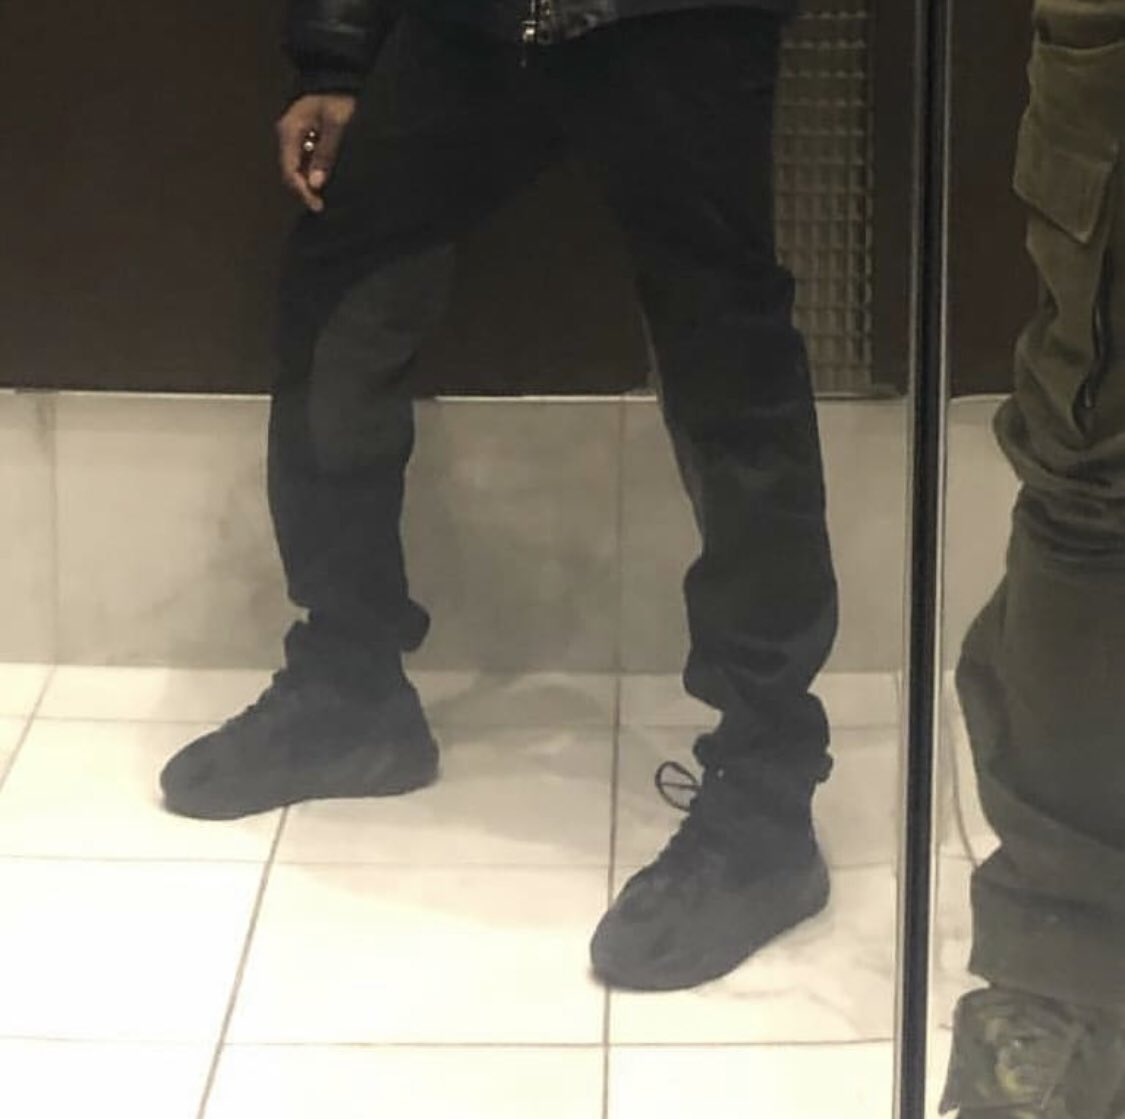 competitive price 18562 515d7 yeezy.live (@yeezylive) | Twitter